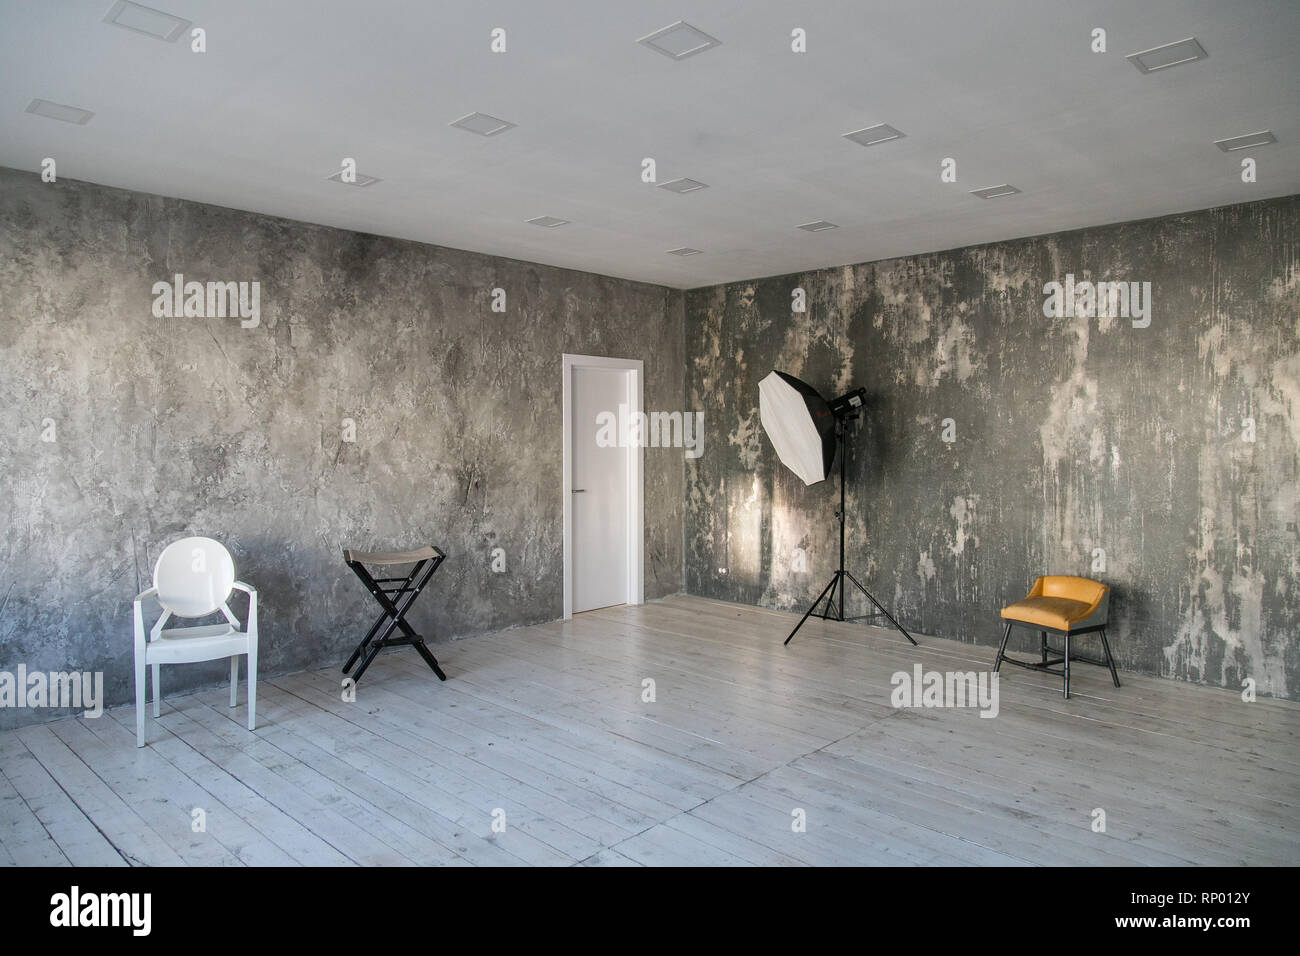 Light Wood Floors Gray Walls Modern Light Loft Style Room With Designer Chairs And Lighting